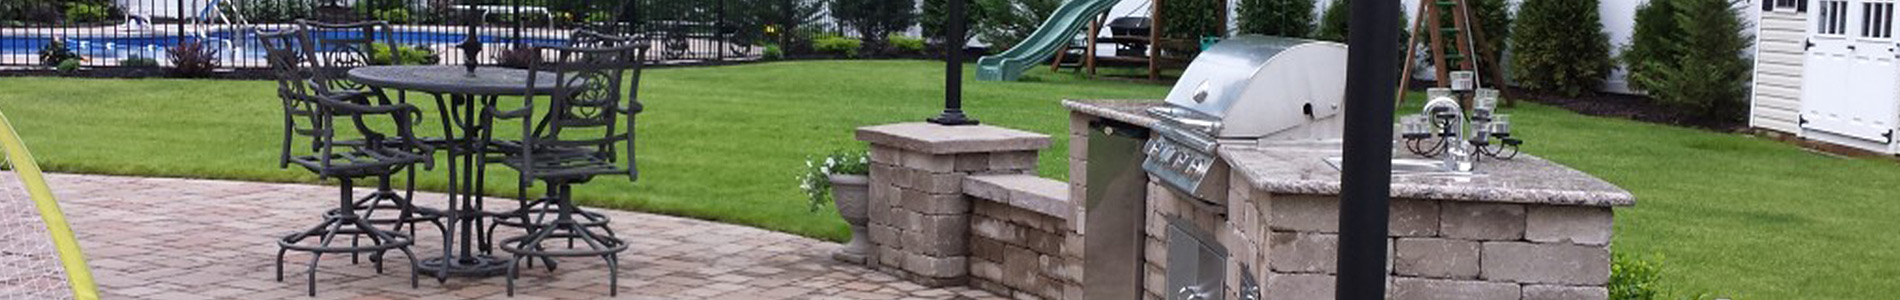 innerpage-banner-outdoorpatio